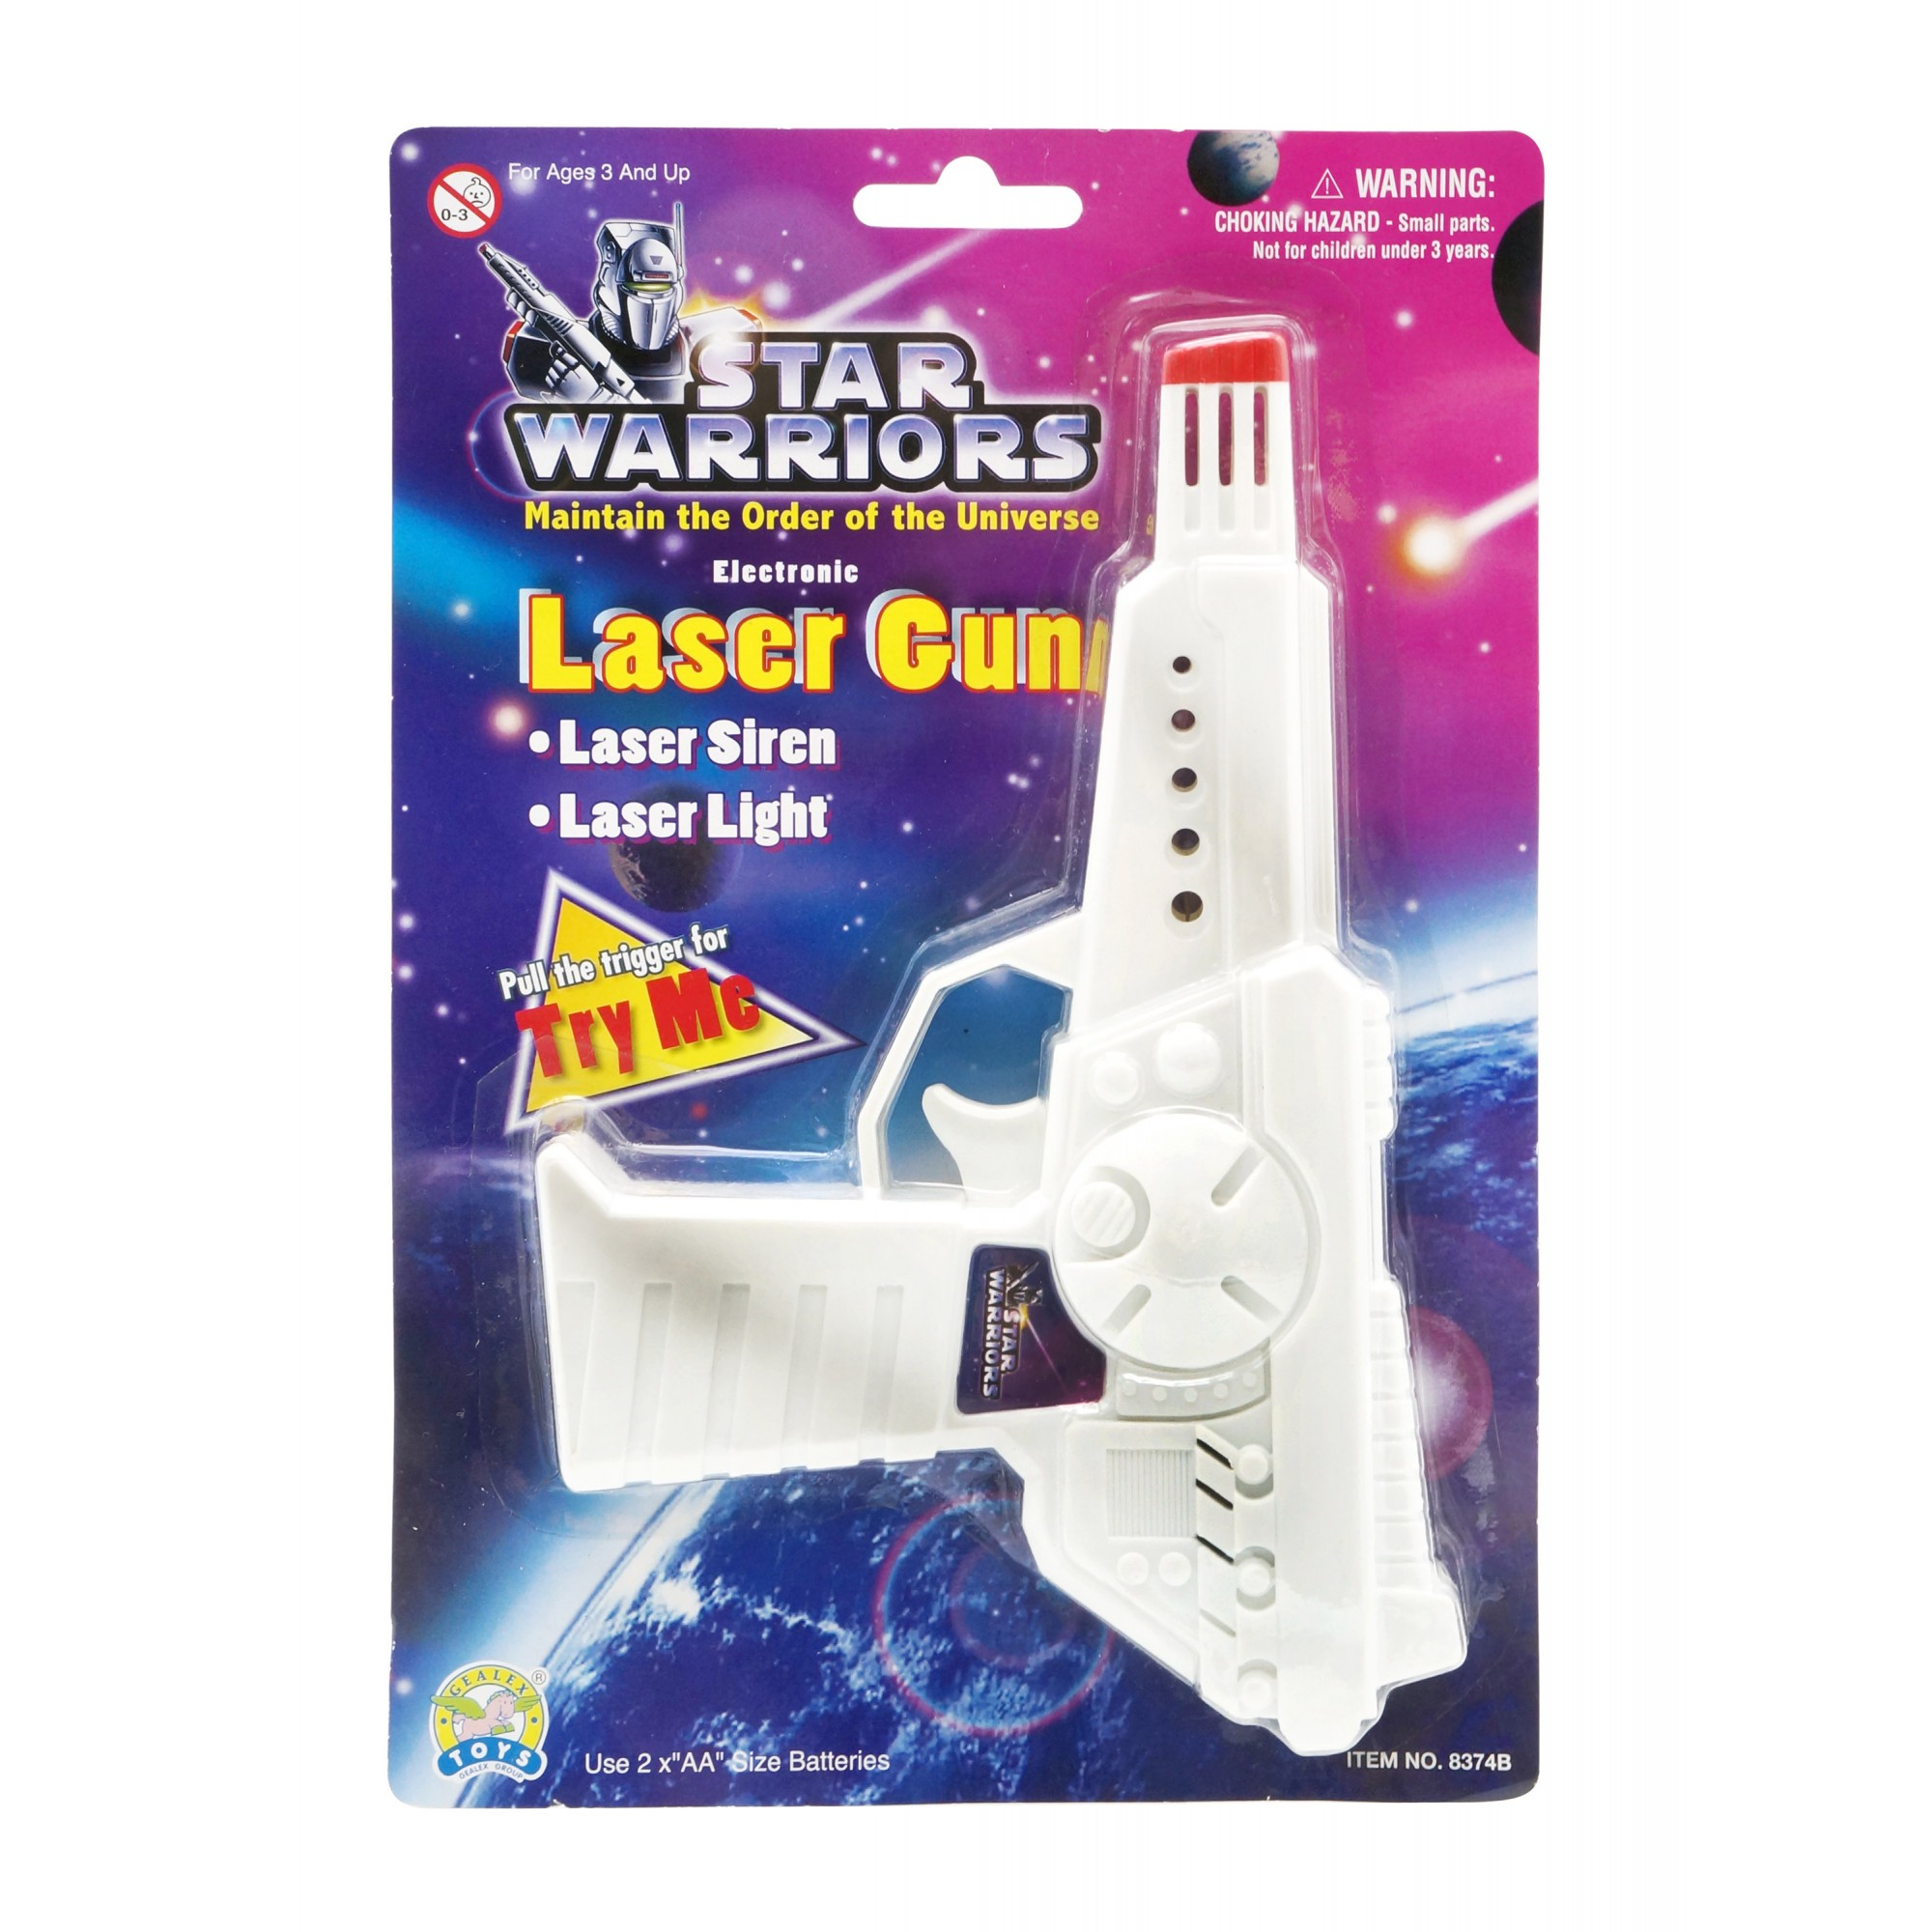 Star Warriors Electronic Laser Gun